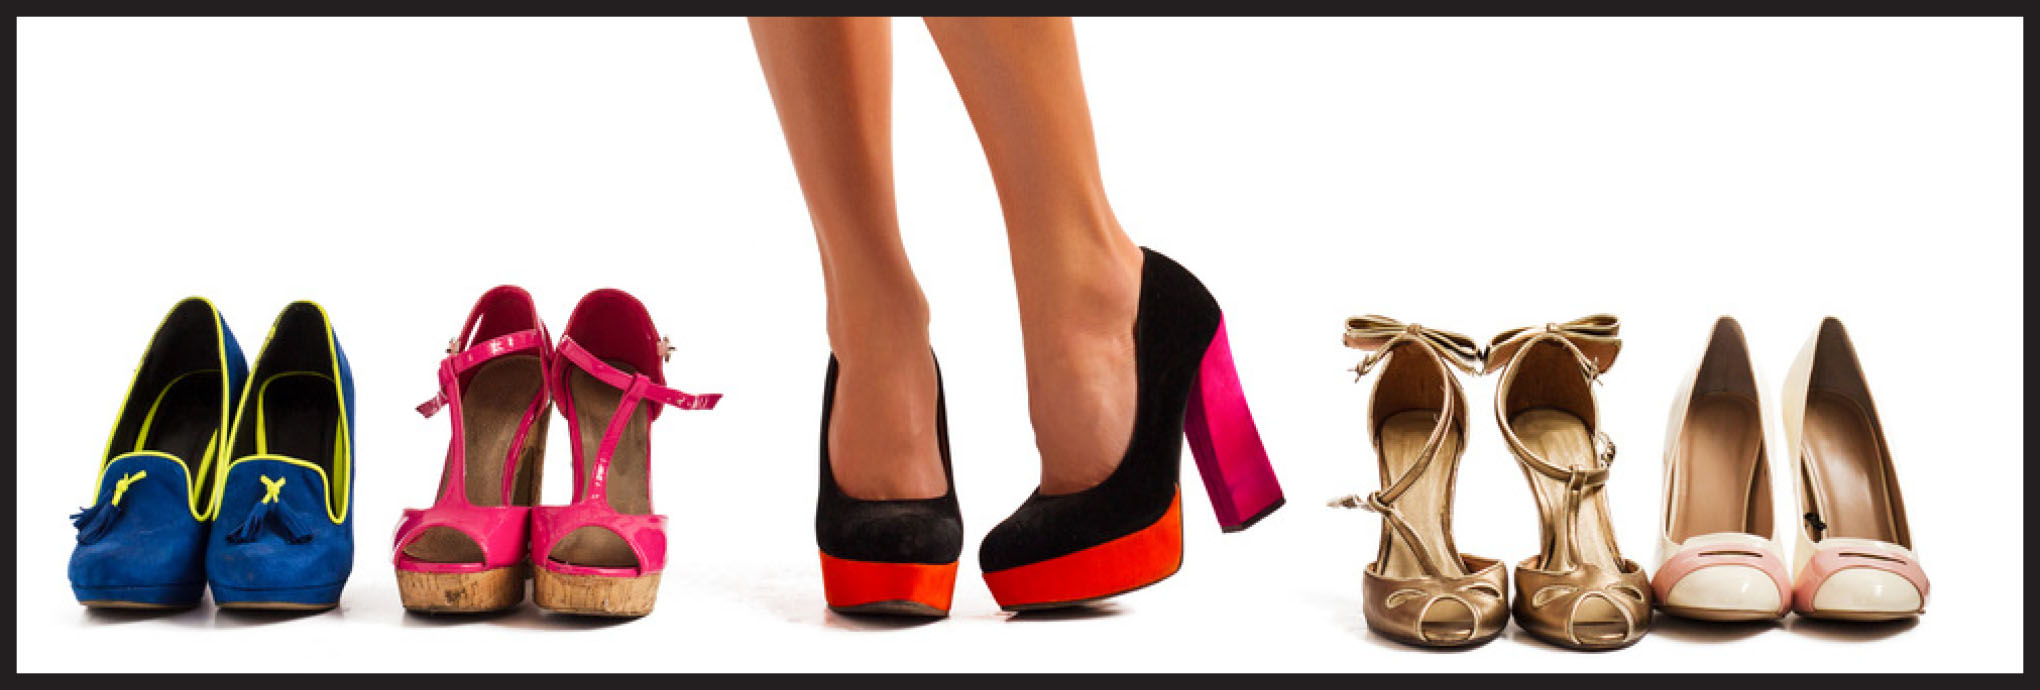 Women's Shopping Habits in the Shoe Industry | WMI